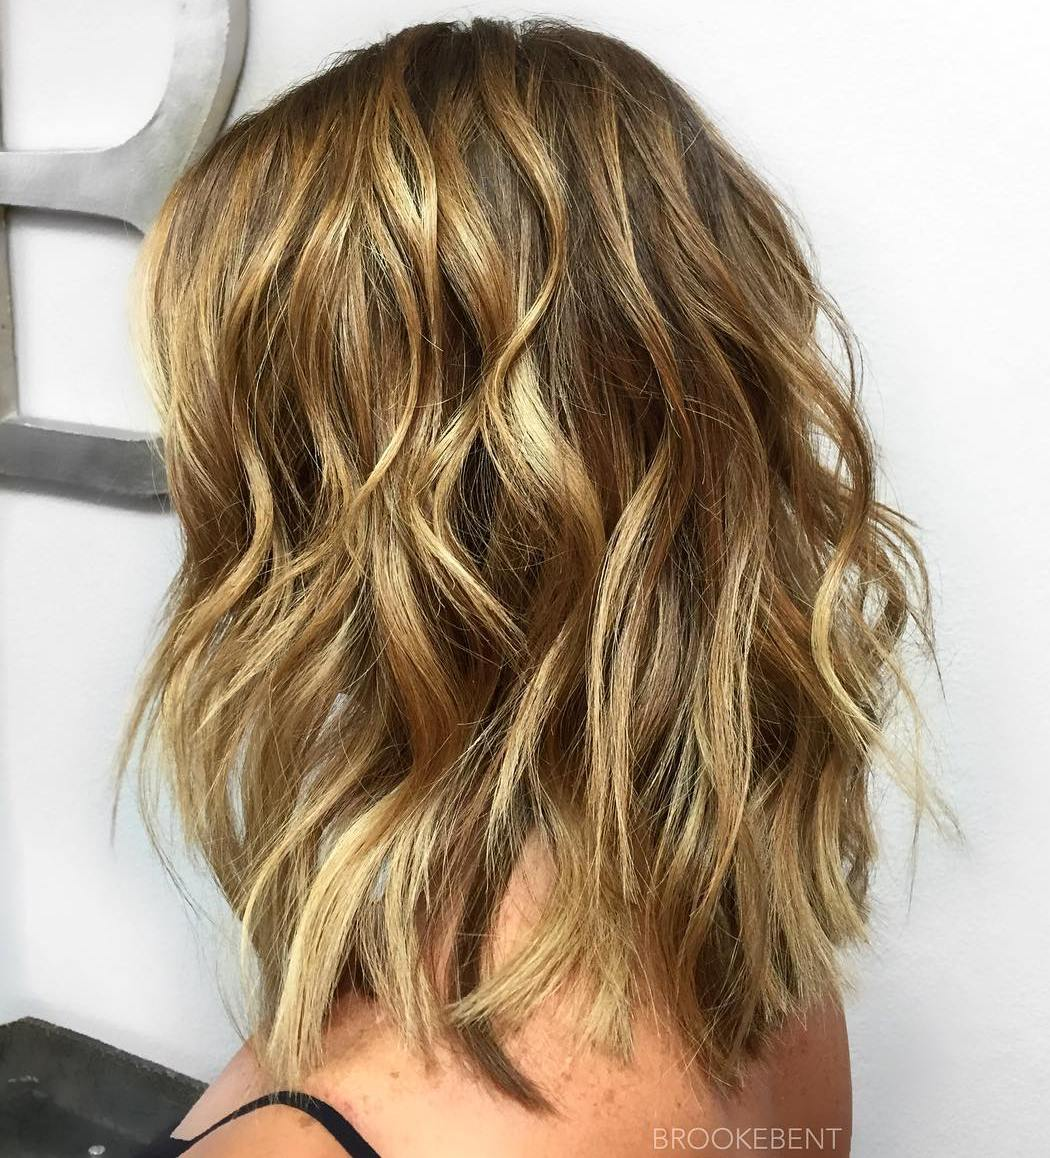 Simple Wavy Hairstyle with Golden Blonde Balayage